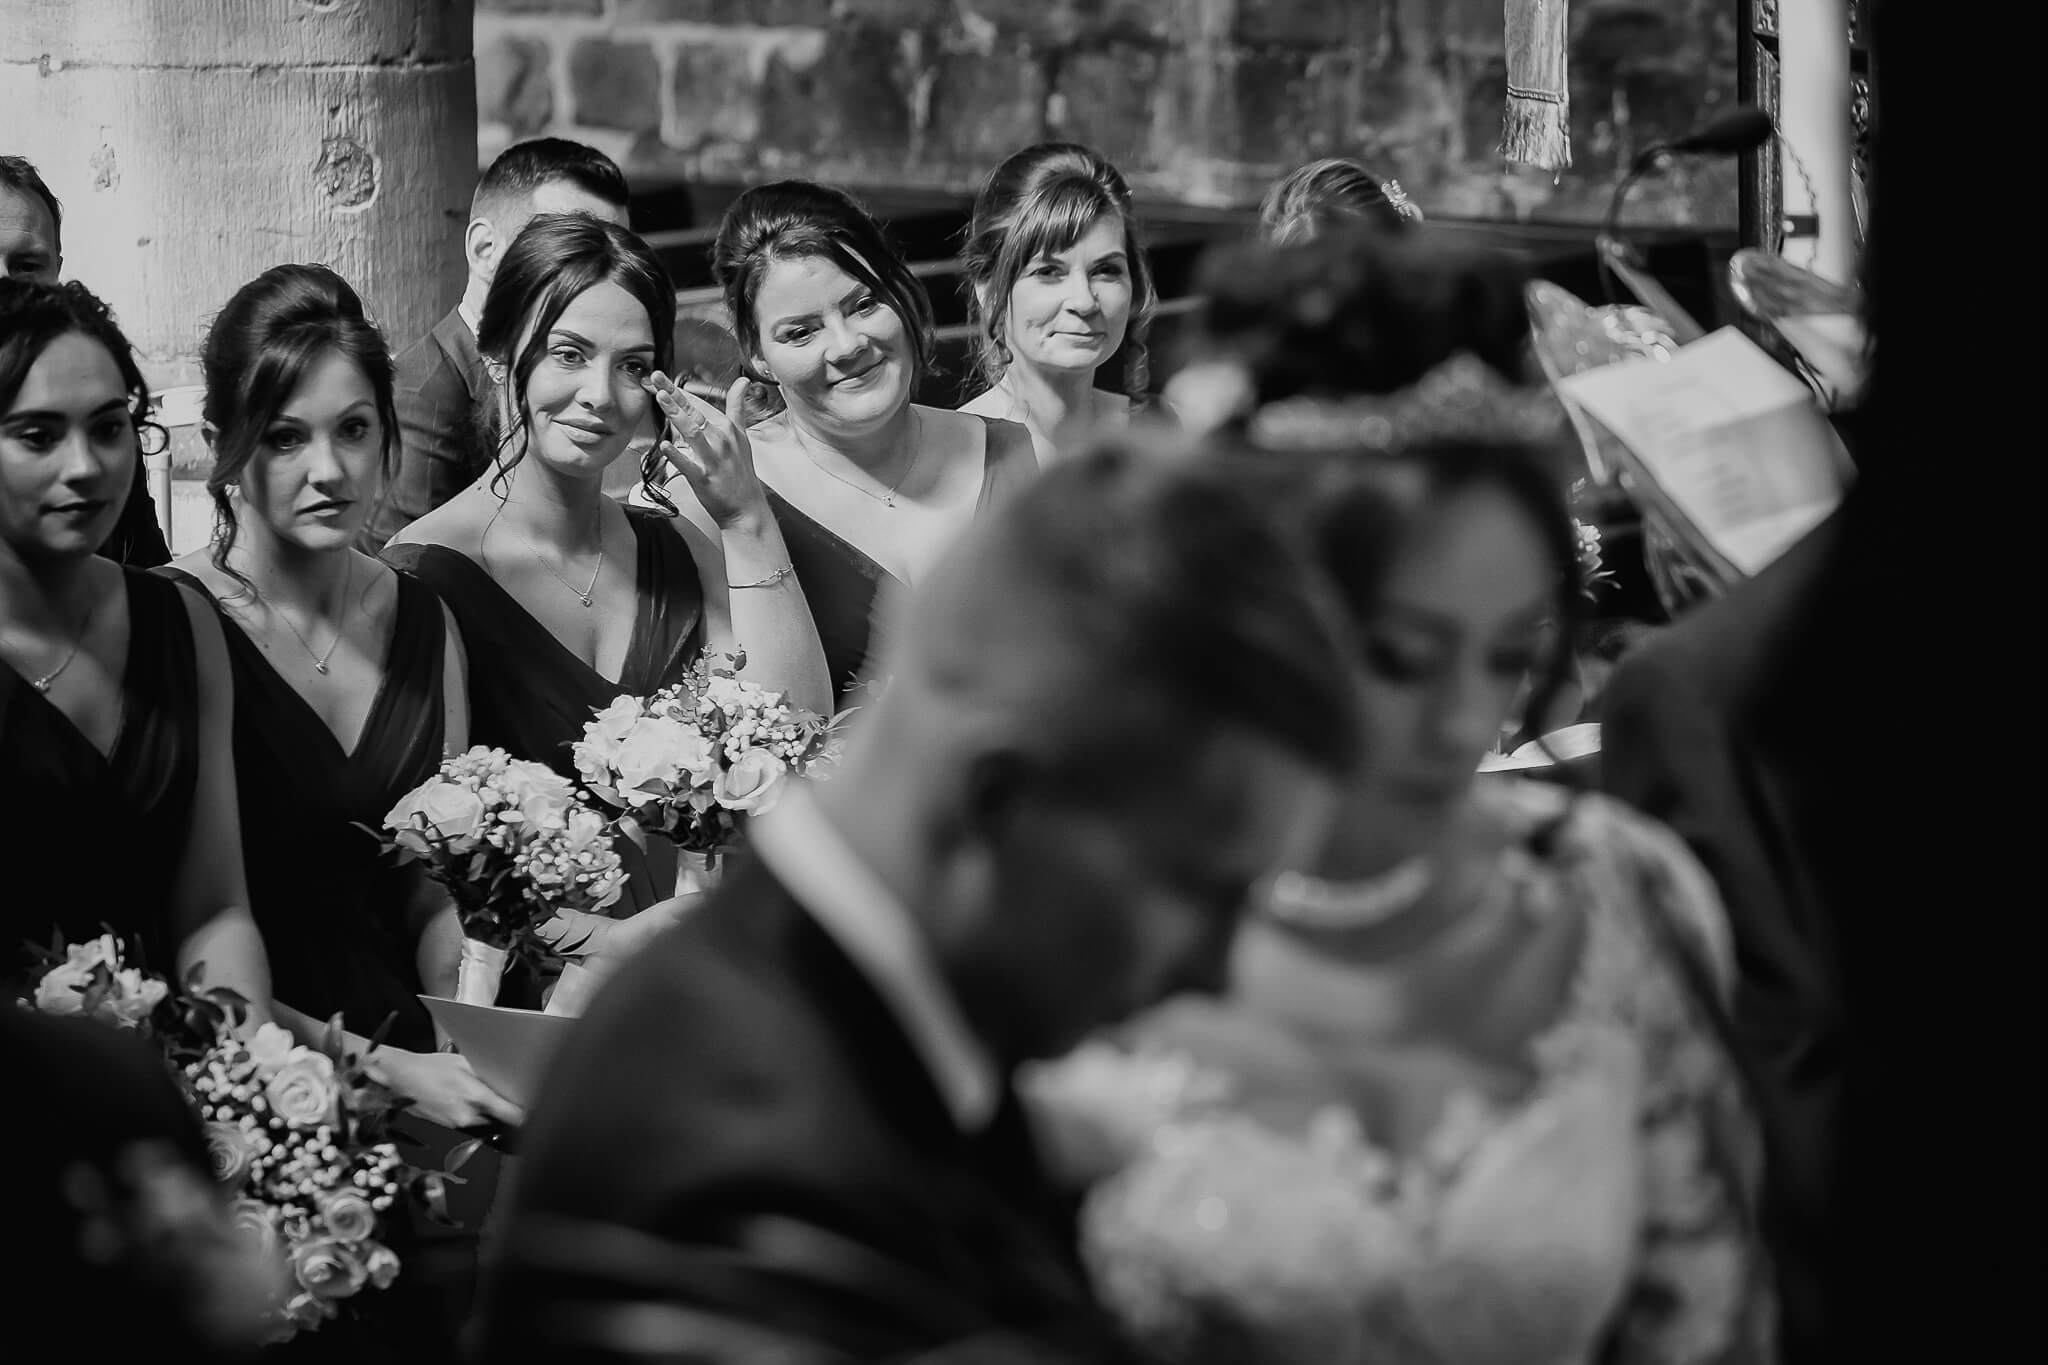 best-wedding-photographers-uk-europe-stanbury-photography-055